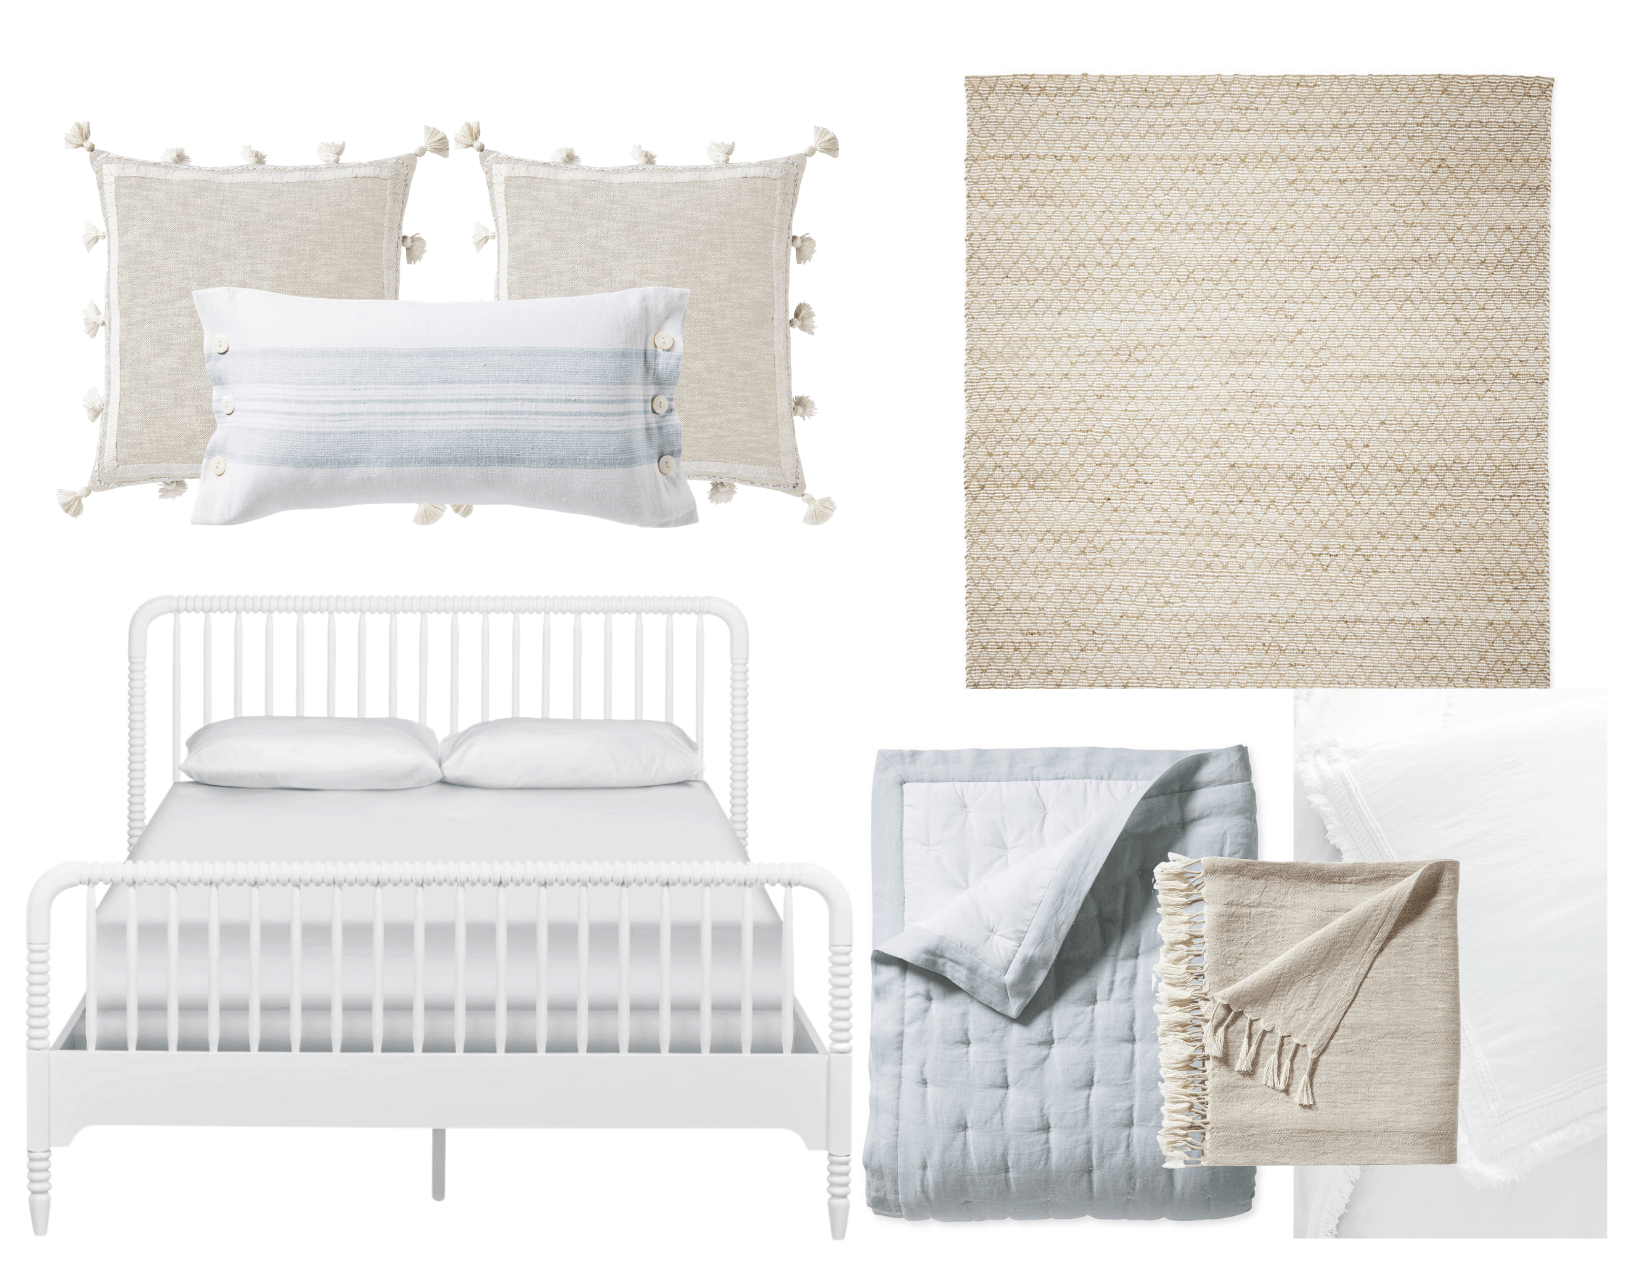 Moodboard for kids room using blue and white decor from Serena & Lily.